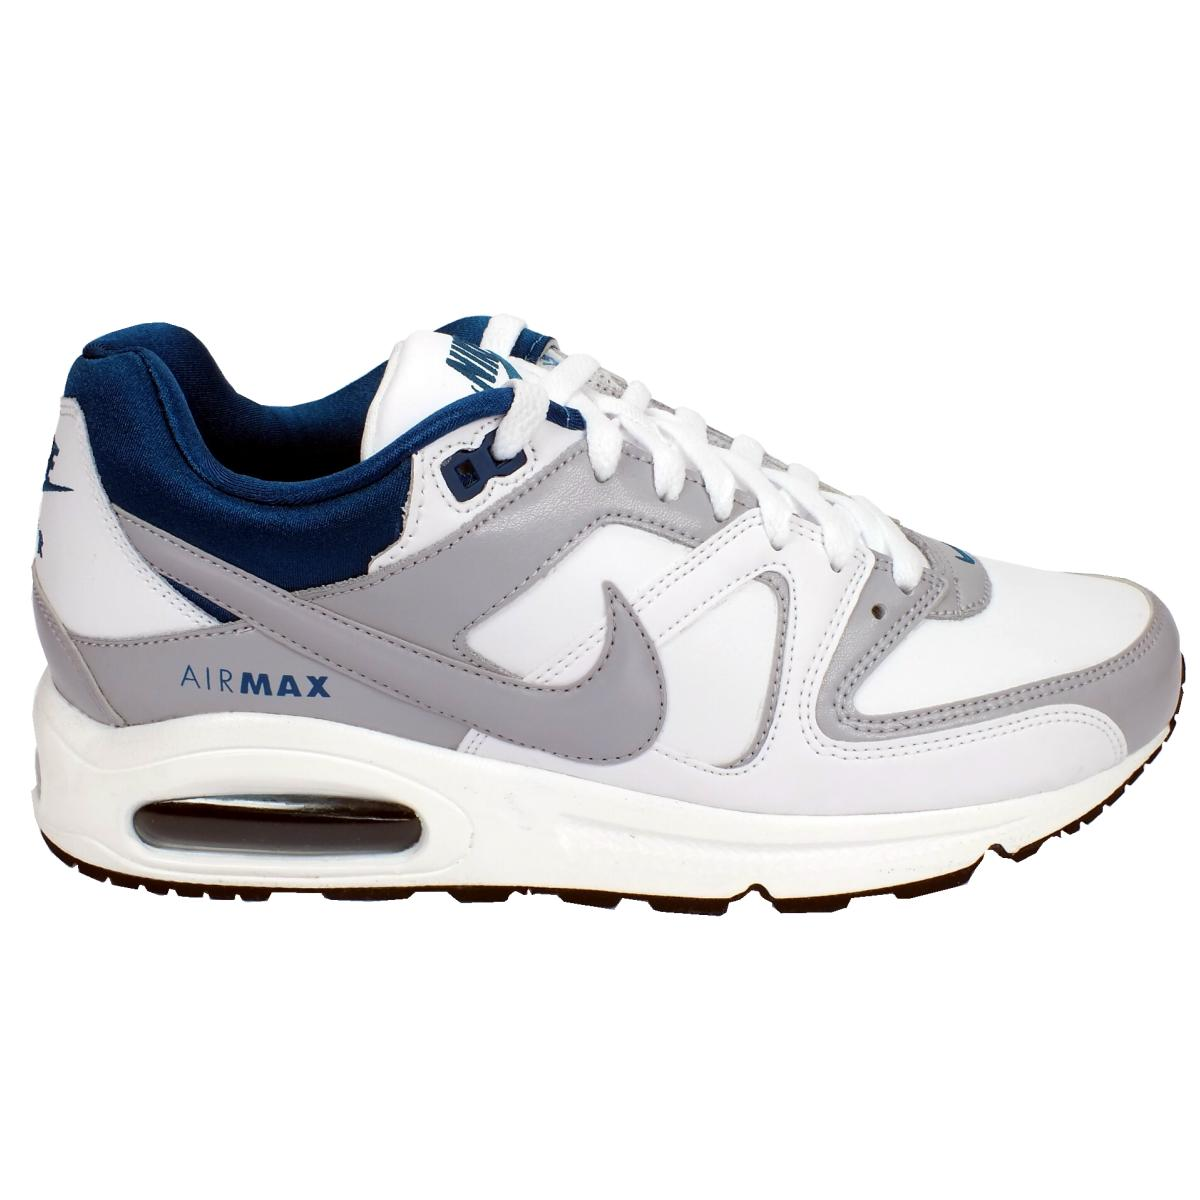 nike air max command damen sneakers turnschuhe. Black Bedroom Furniture Sets. Home Design Ideas